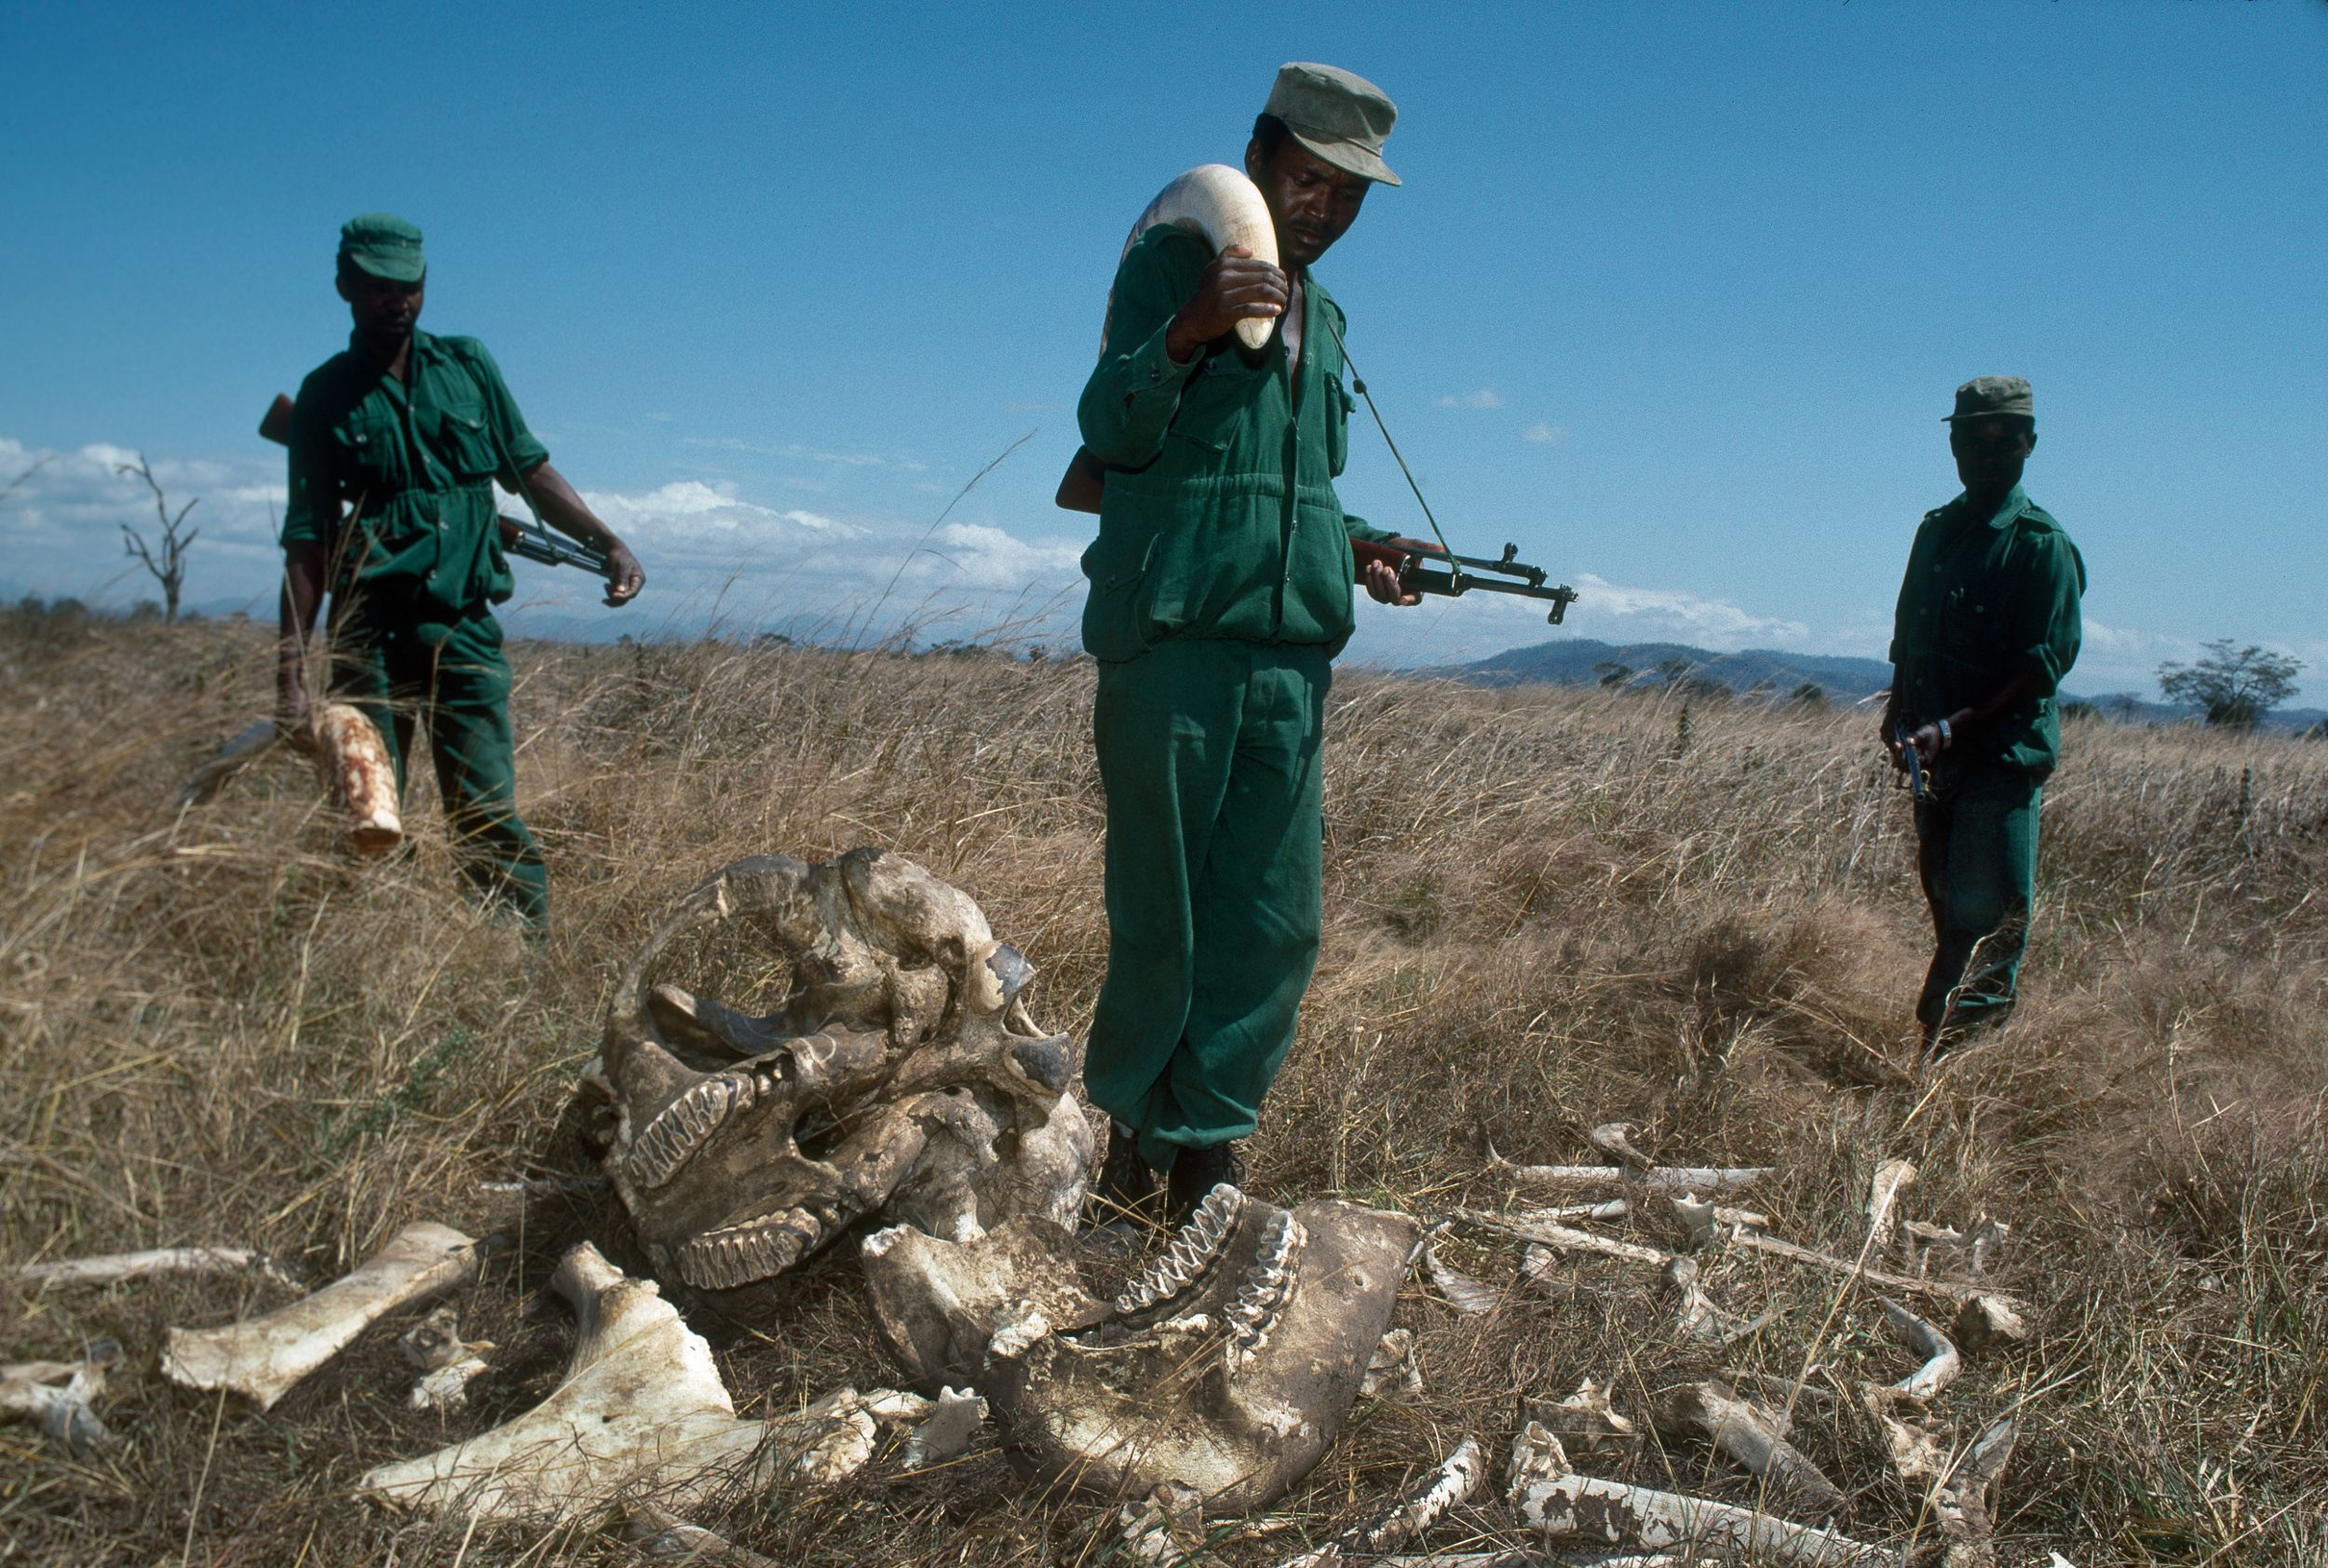 MIKUMI, TANZANIA- JULY 1989: Park Rangers, who earn 70 US dollars per month with a confiscated elephant ivory tusk worth 2,700 US dollars, at Mikumi National Park, Tanzania. The rangers stand beside the remains of a bull elephant killed by poachers.